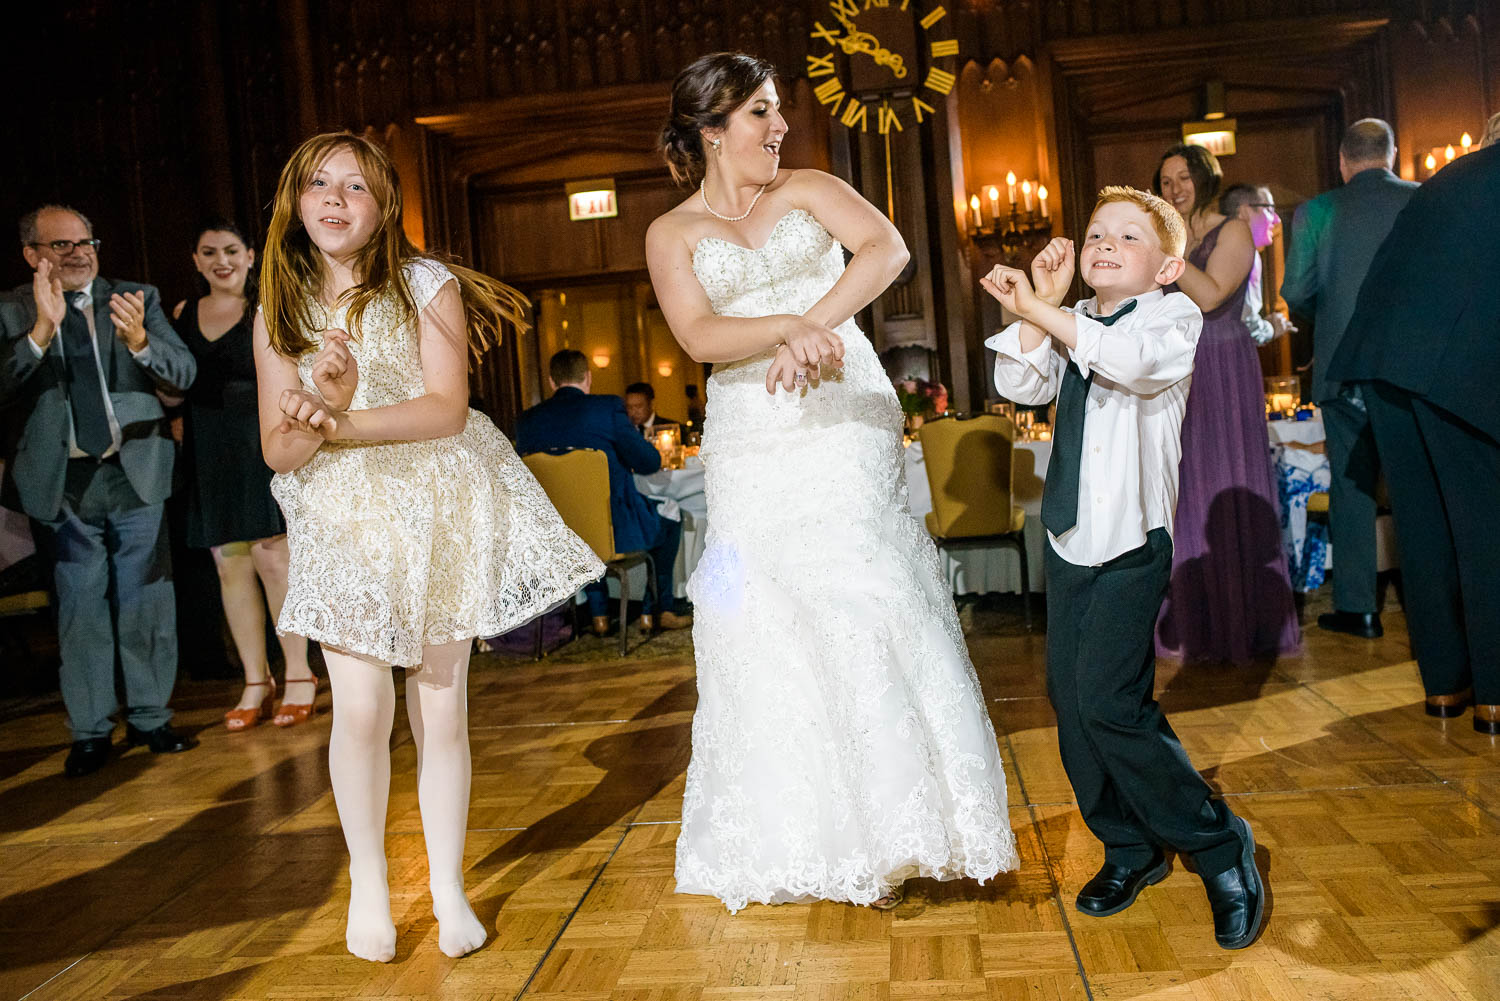 Bride dances with the flower girl and ring bearer during a University Club of Chicago wedding.